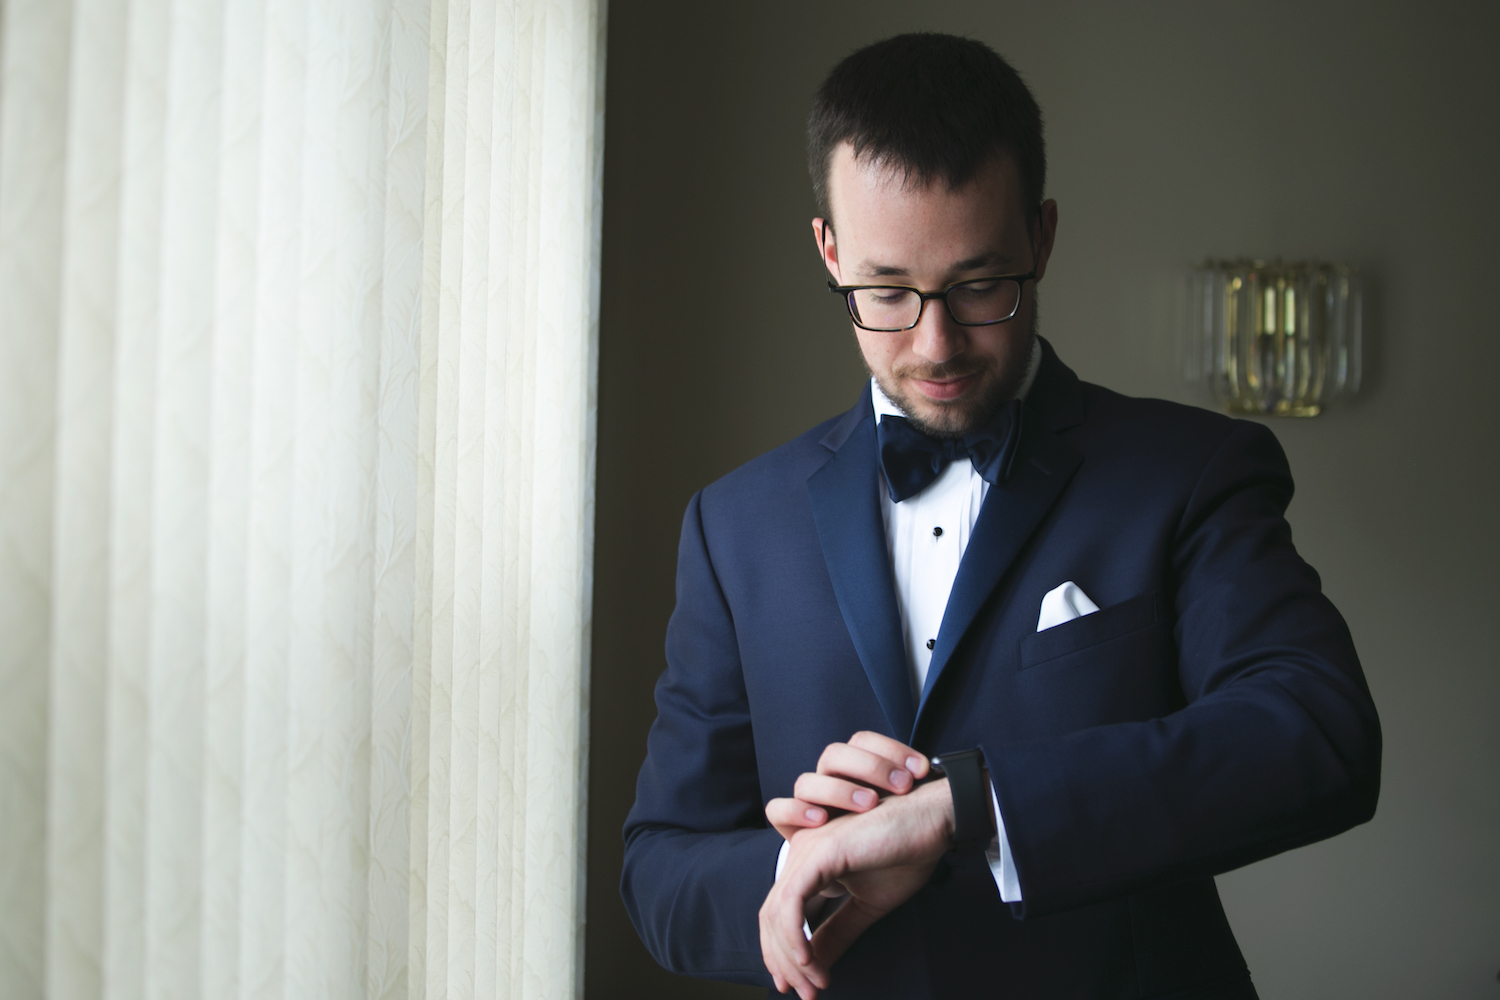 mike-in-tux-checking-watch-groom-prep-nj-wedding-photography